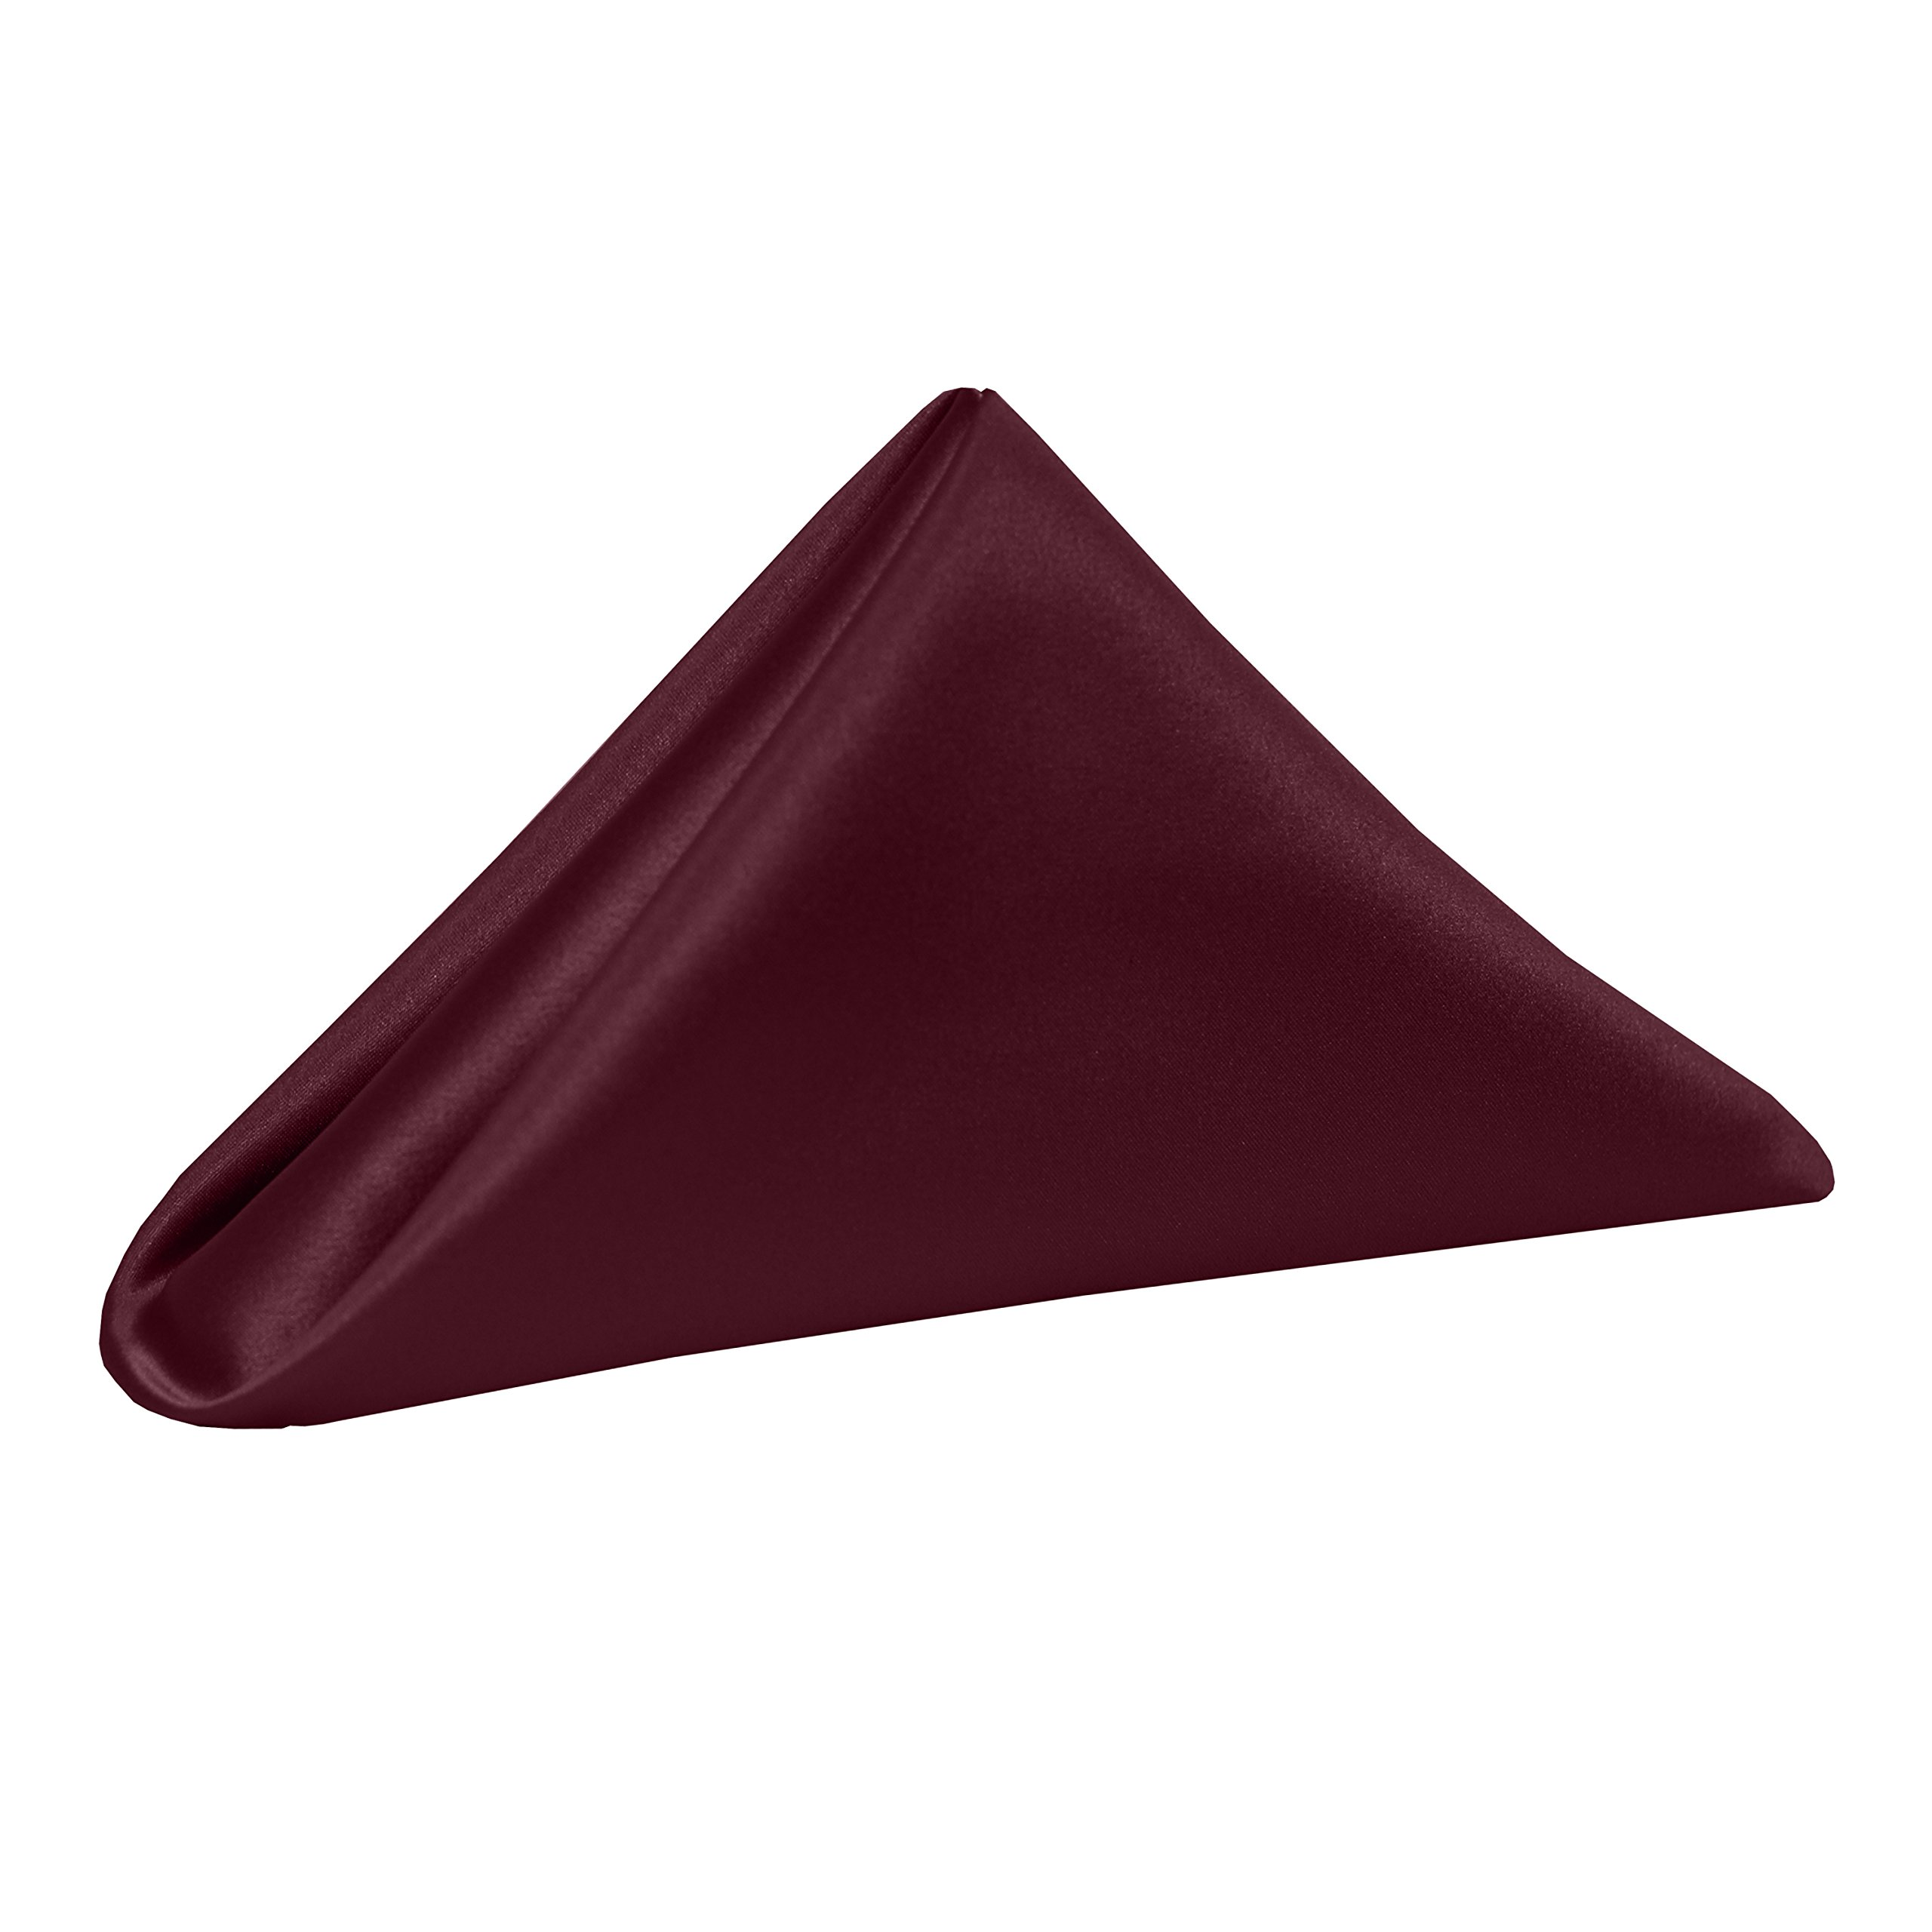 Ultimate Textile -3 Dozen- Bridal Satin 20 x 20-Inch Dinner Napkins, Burgundy Red